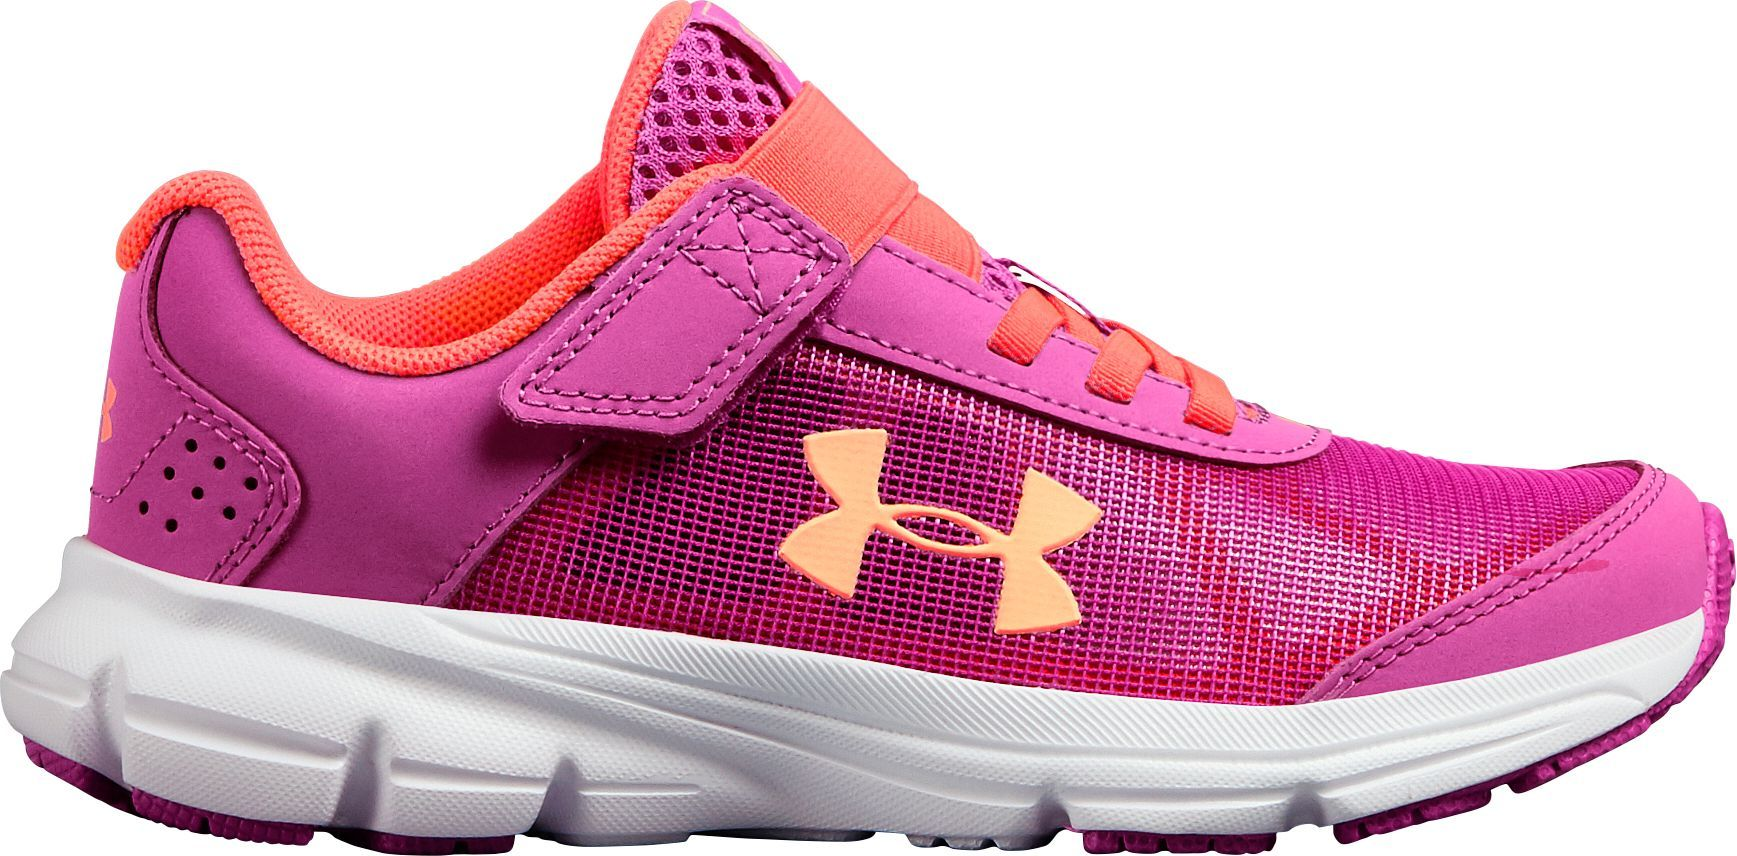 on sale 80a75 690ce Under Armour Kids' Preschool Rave 2 AC Running Shoes, Boy's ...